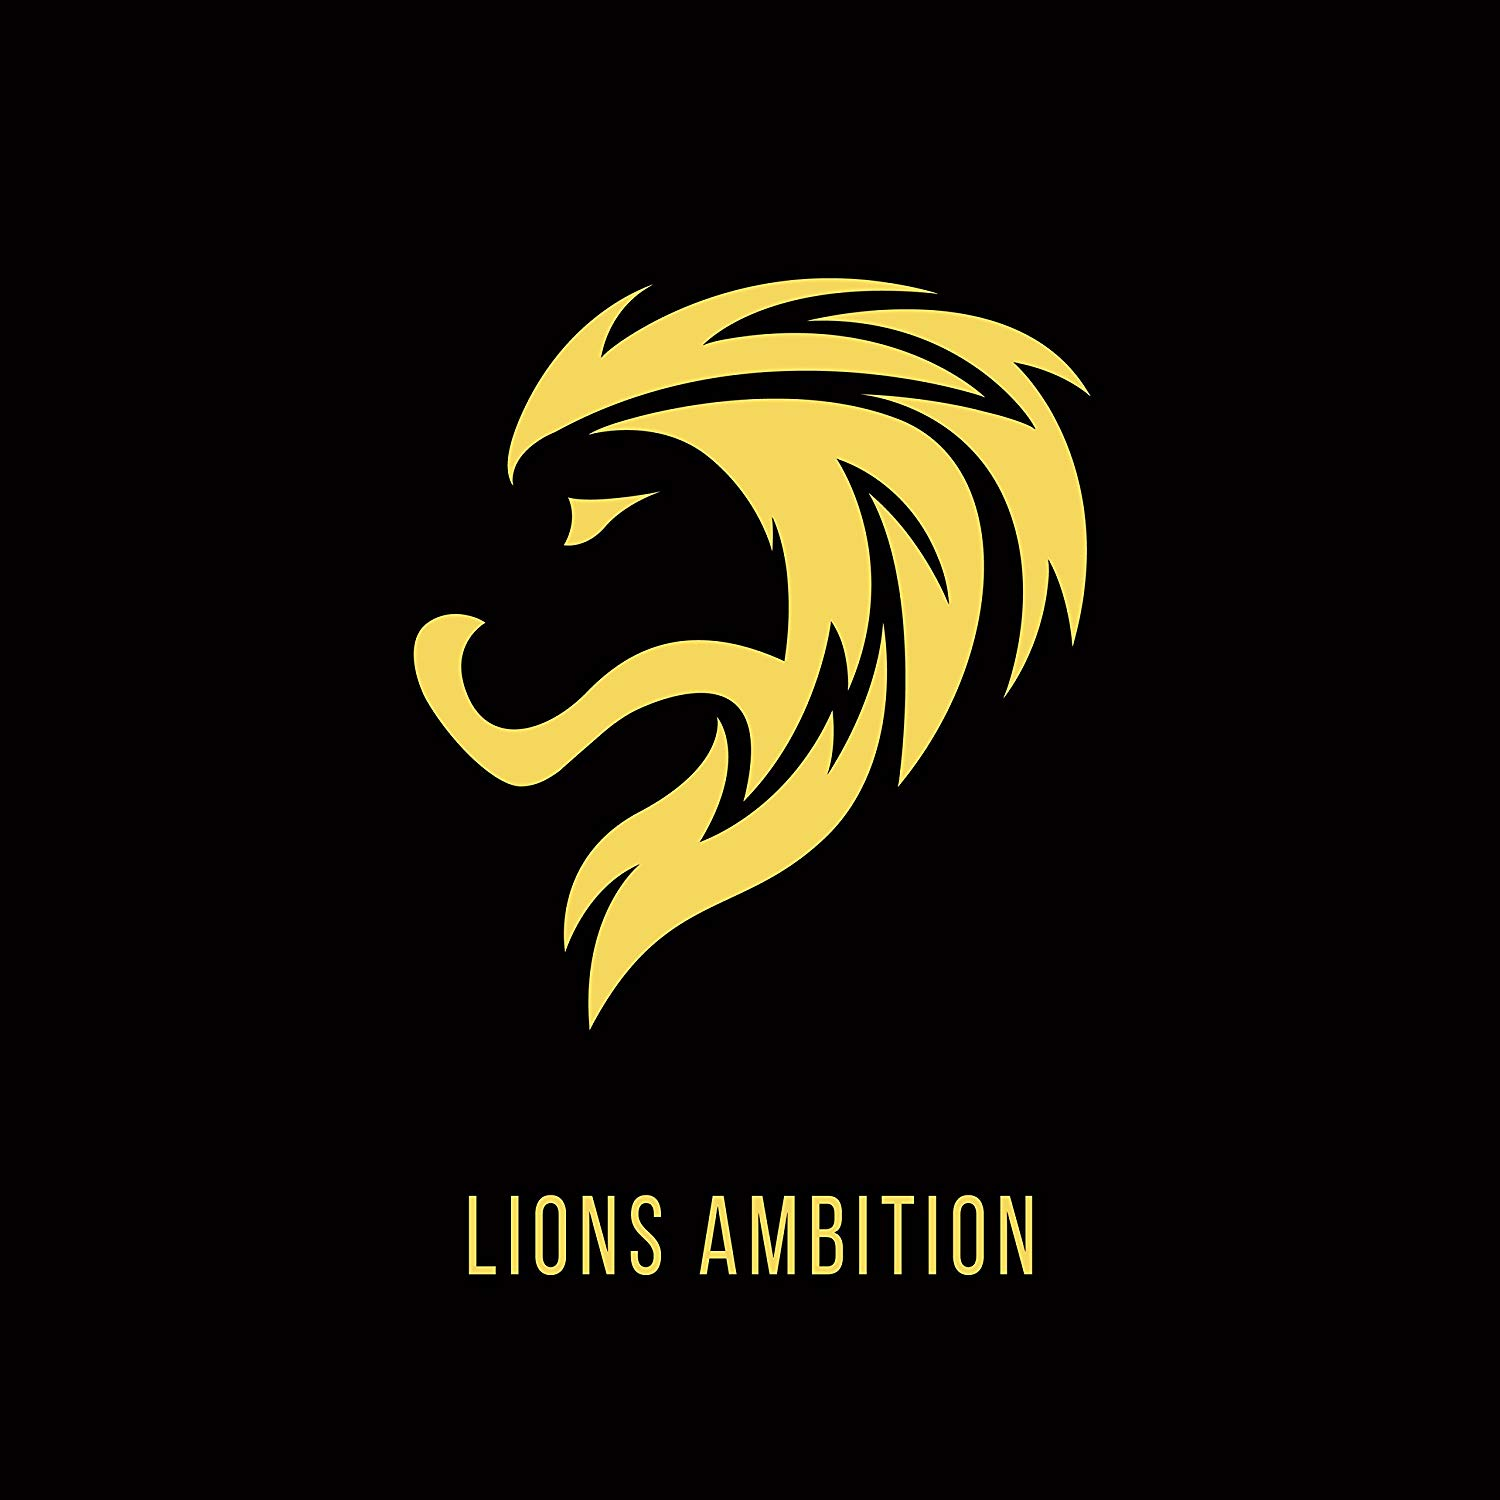 Image of Lions Ambition / Lions Ambition